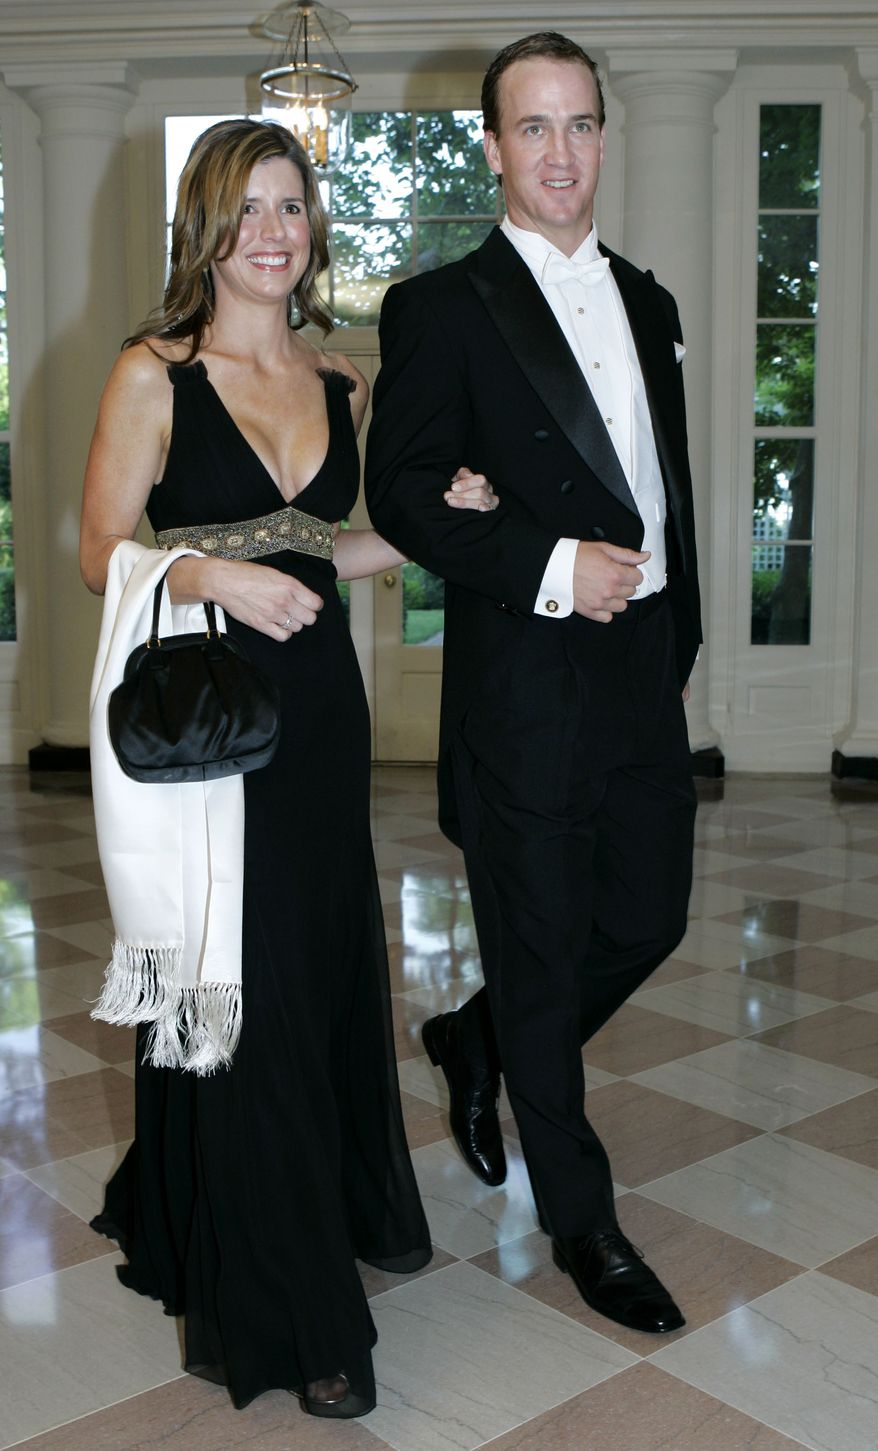 Indianapolis Colts quarterback Peyton Manning, right, and his wife Ashley walk through the Booksellers Area as they arrive for the State Dinner in honor of Queen Elizabeth II and her husband Prince Philip, Monday, May 7, 2007, at the White House in Washington. (AP Photo/Haraz N. Ghanbari)